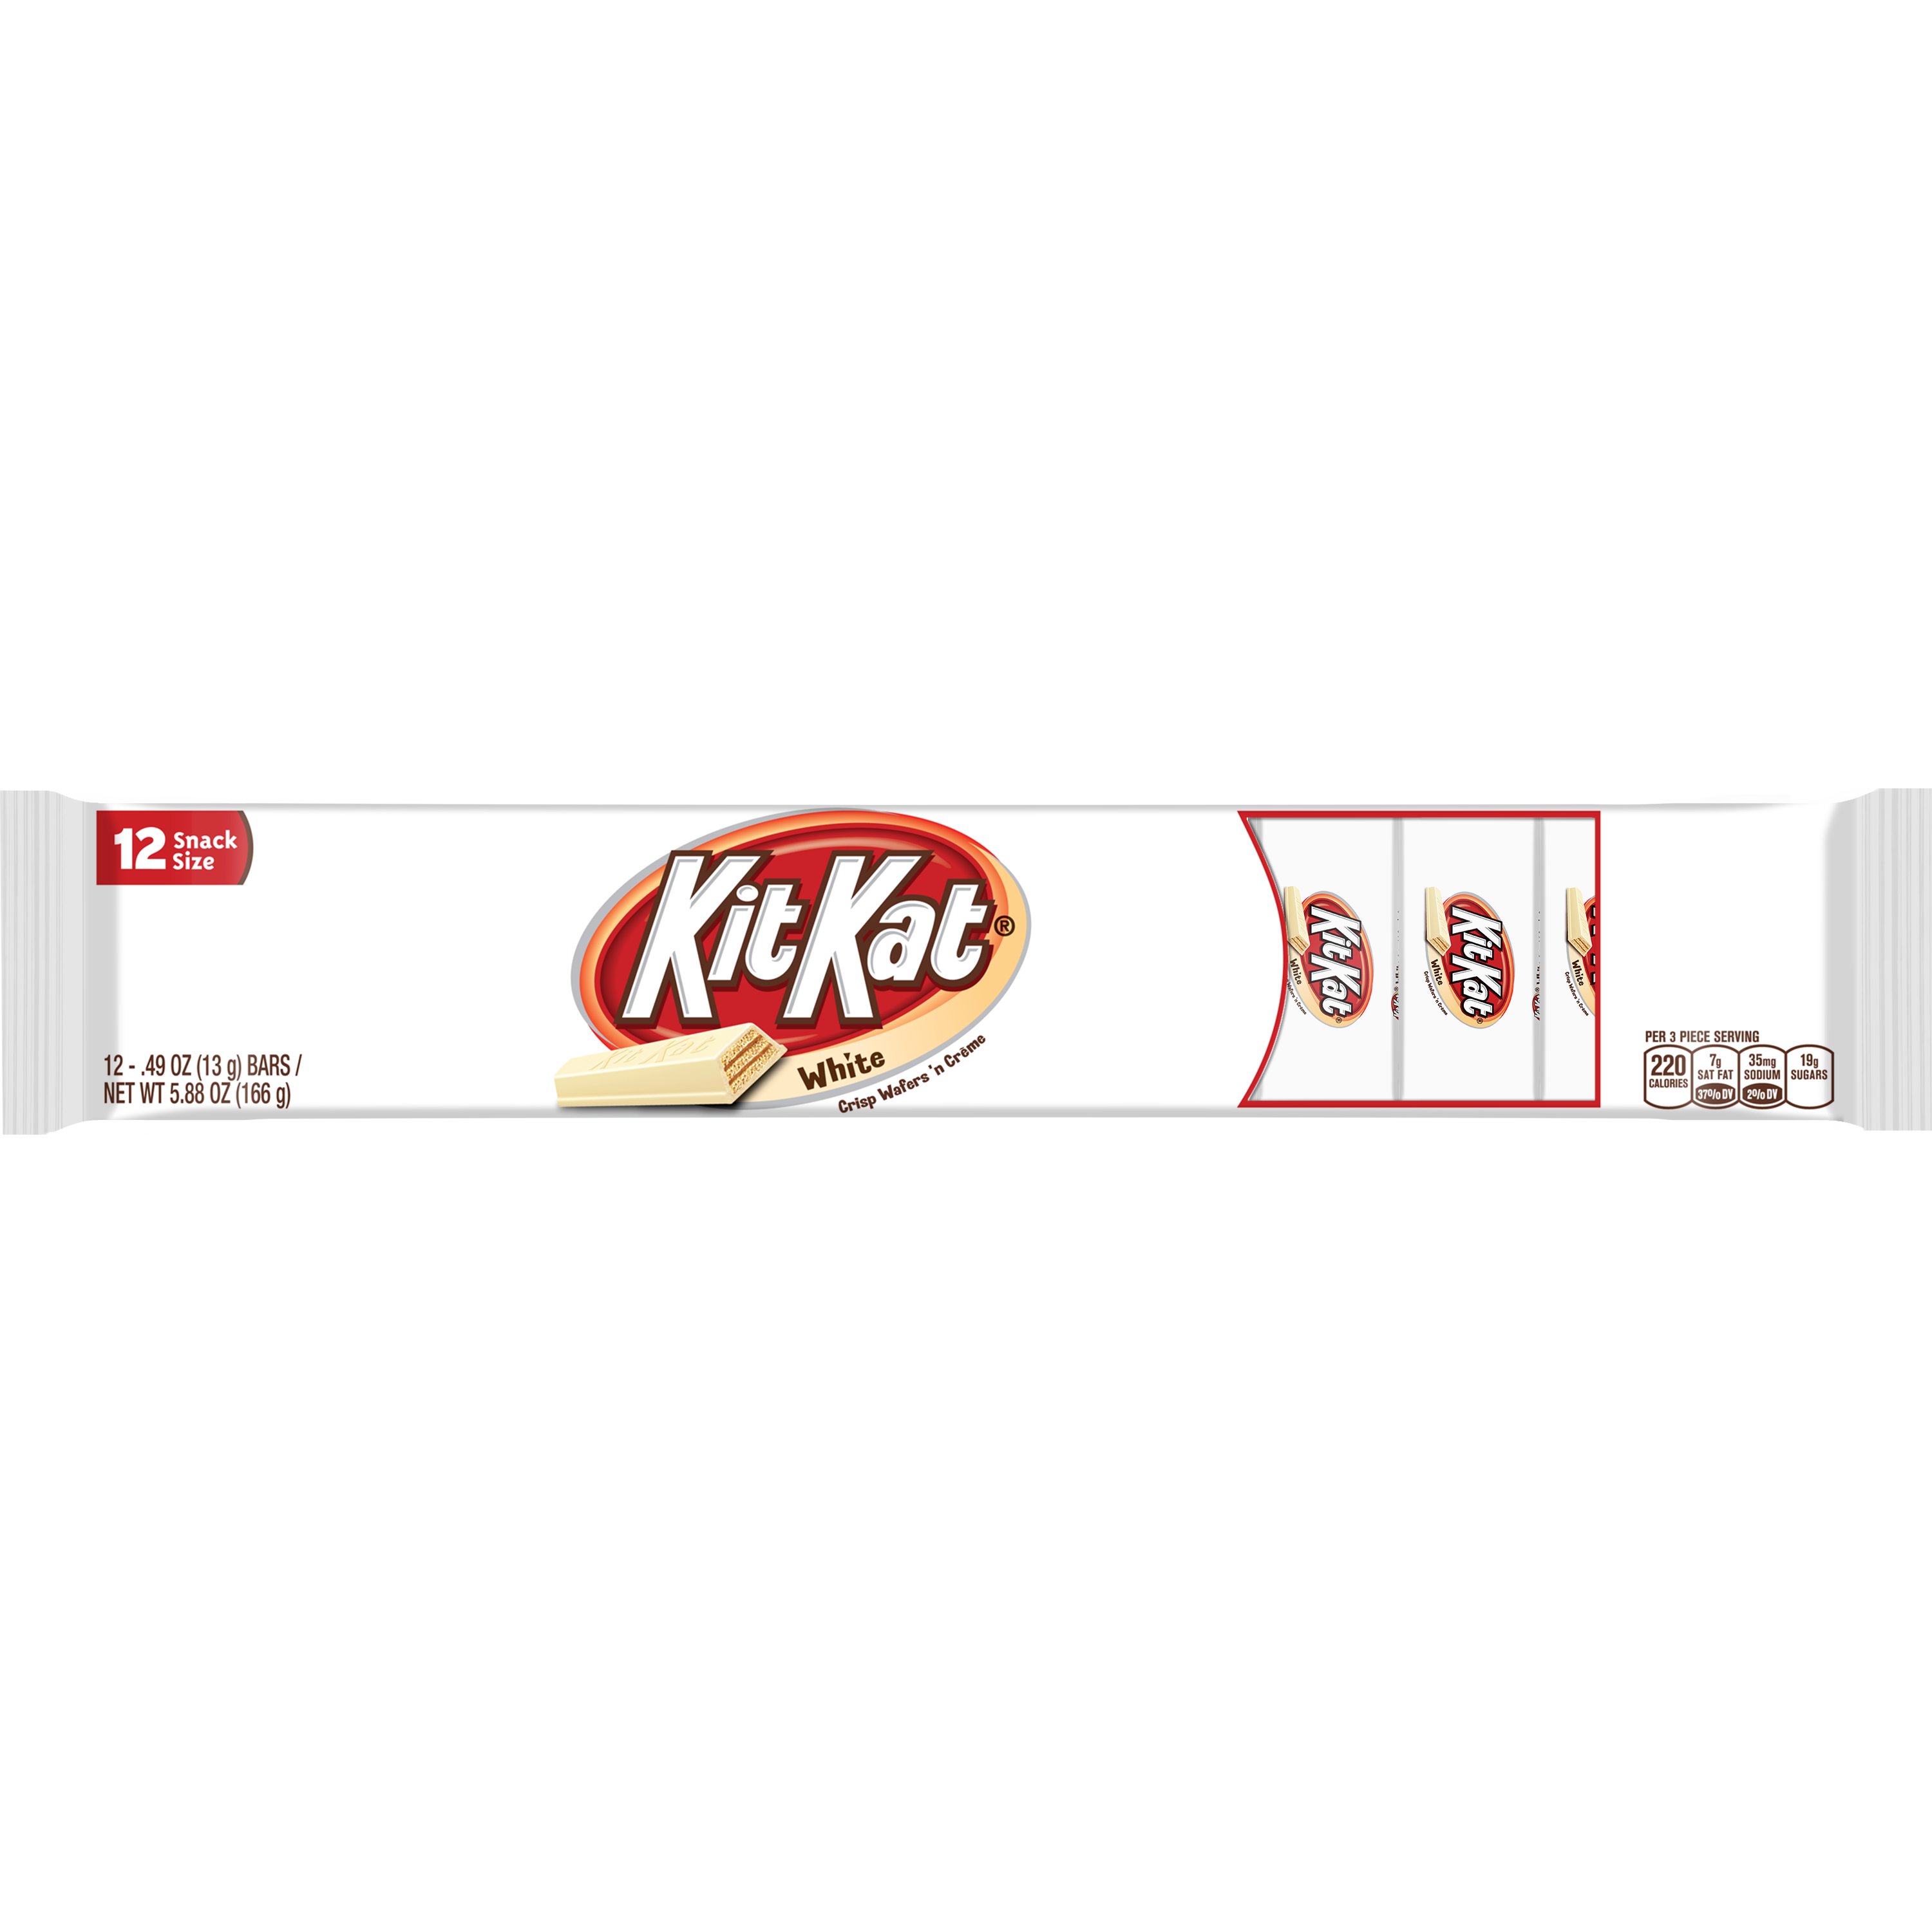 Kit Kat White Snack Size, 12 - 0.40 oz bars